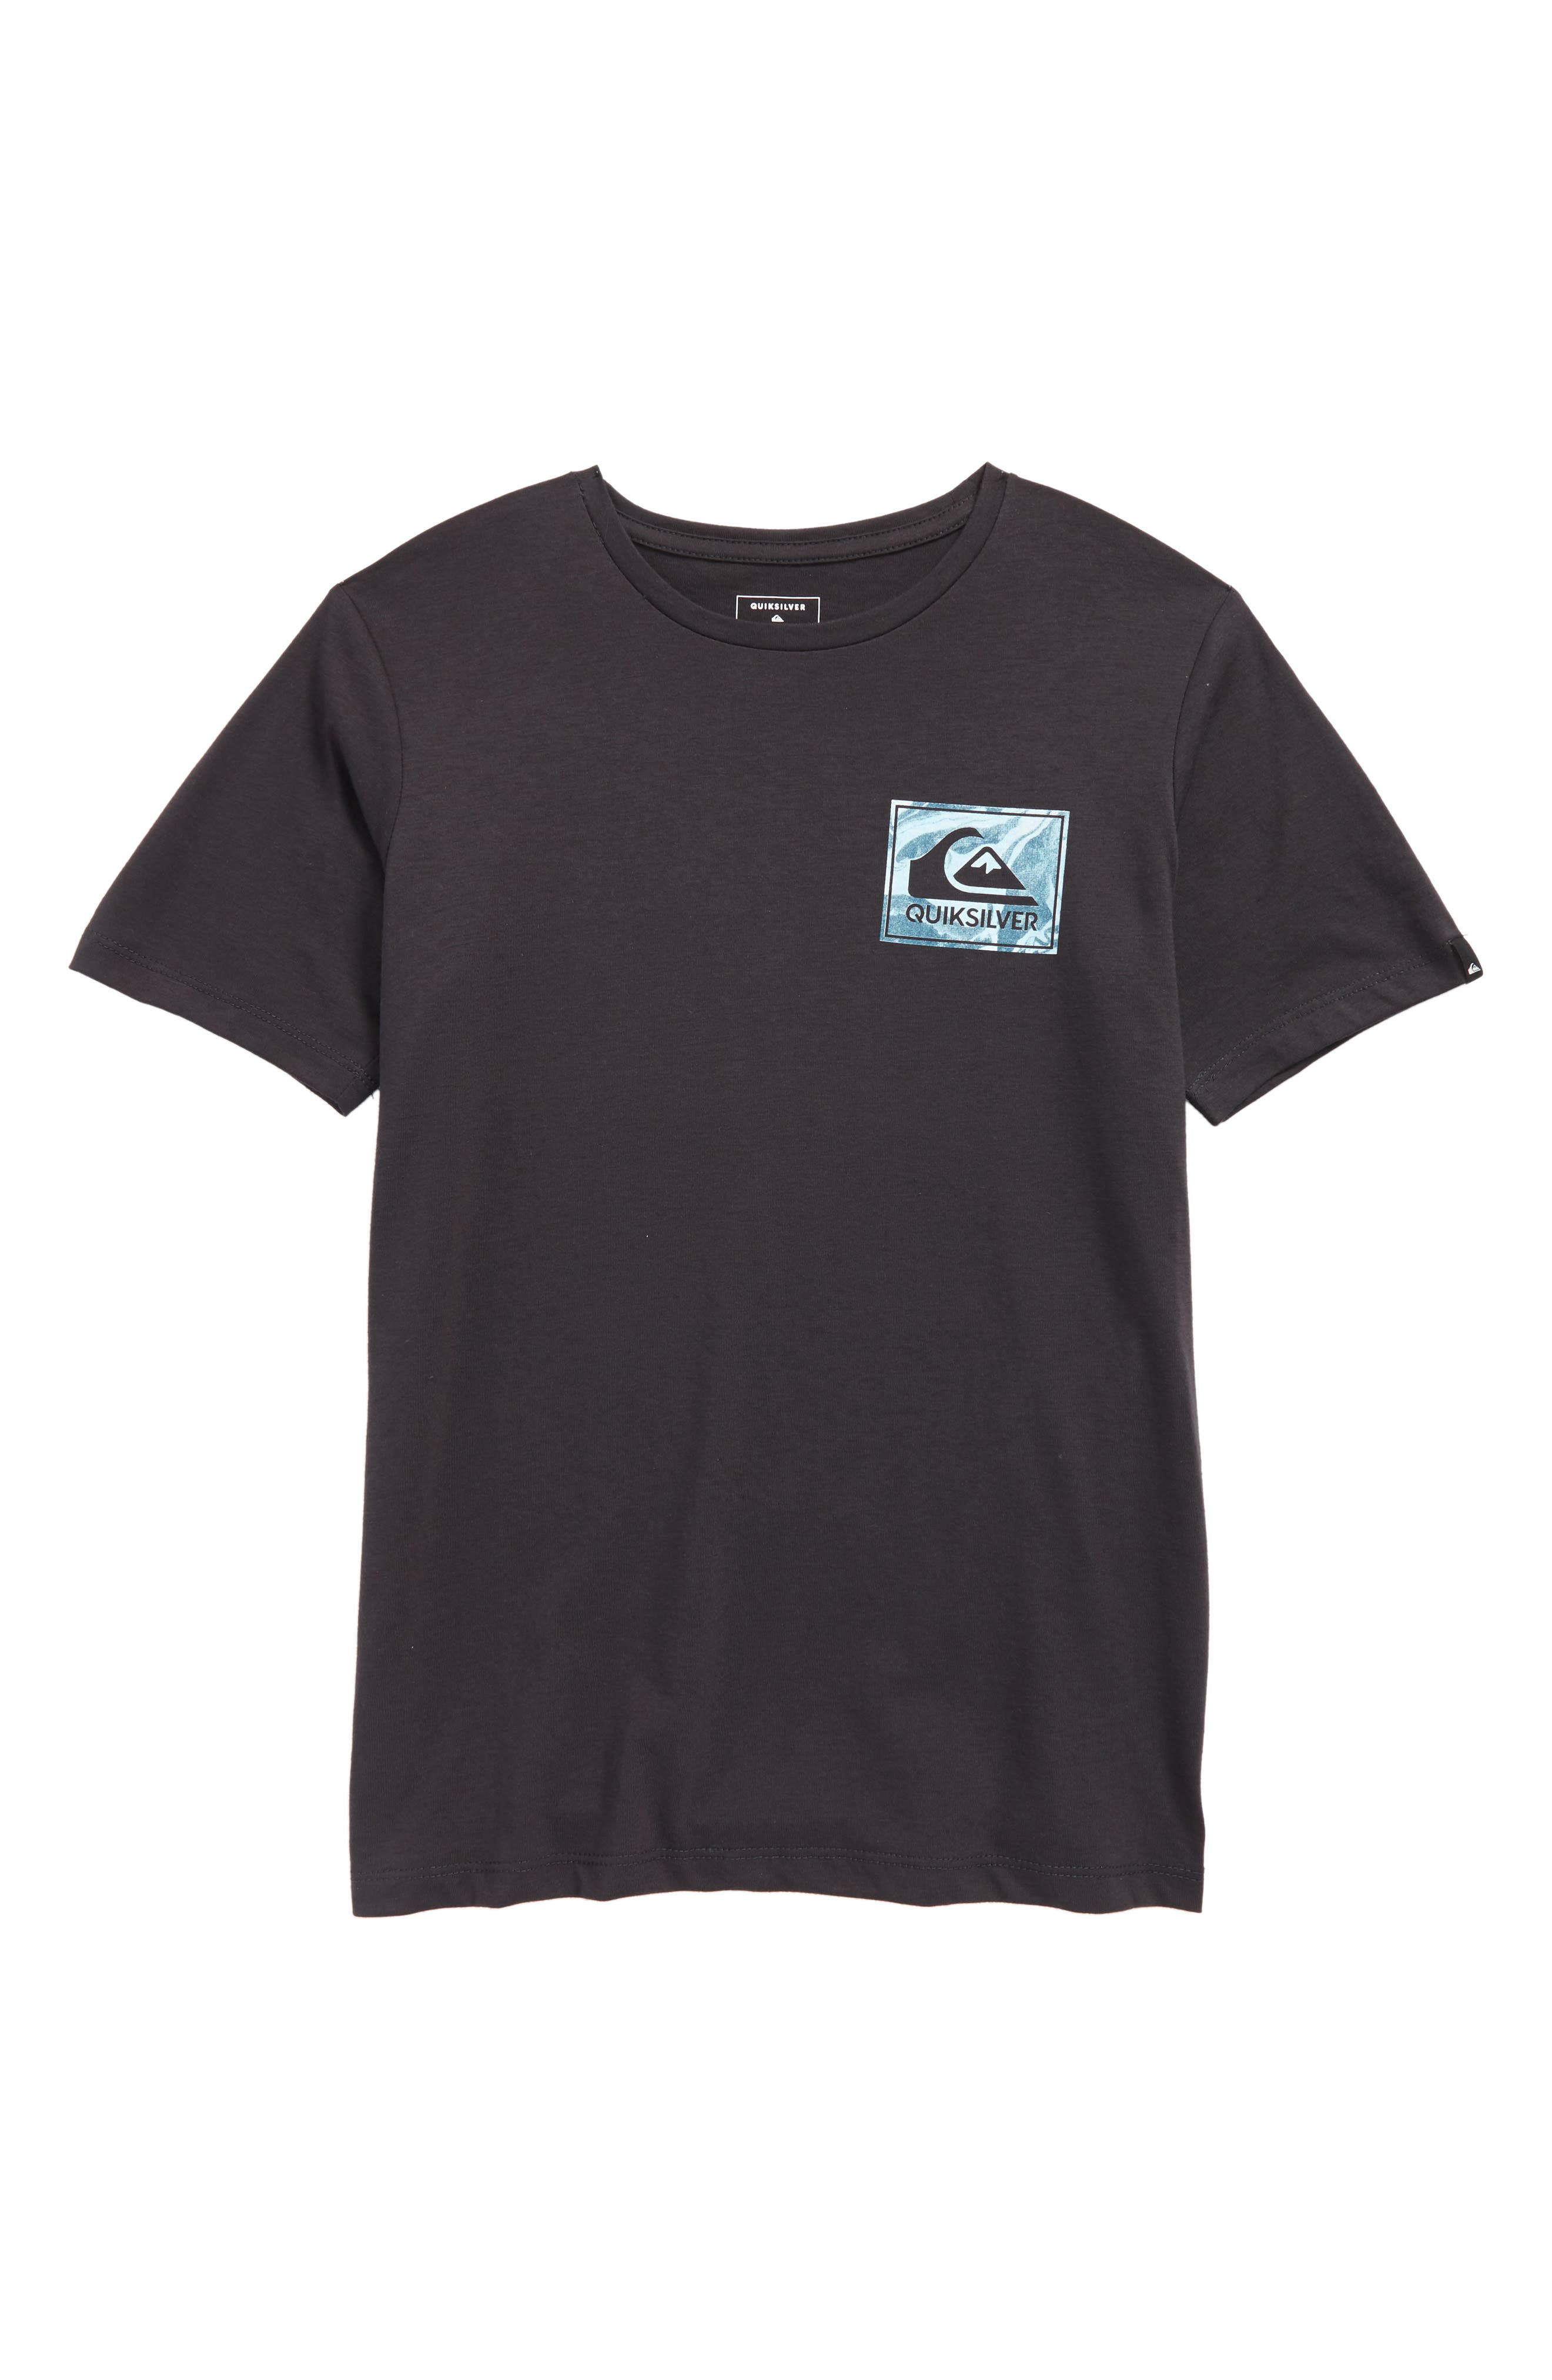 Volcano Blues T-Shirt,                             Main thumbnail 1, color,                             Tarmac